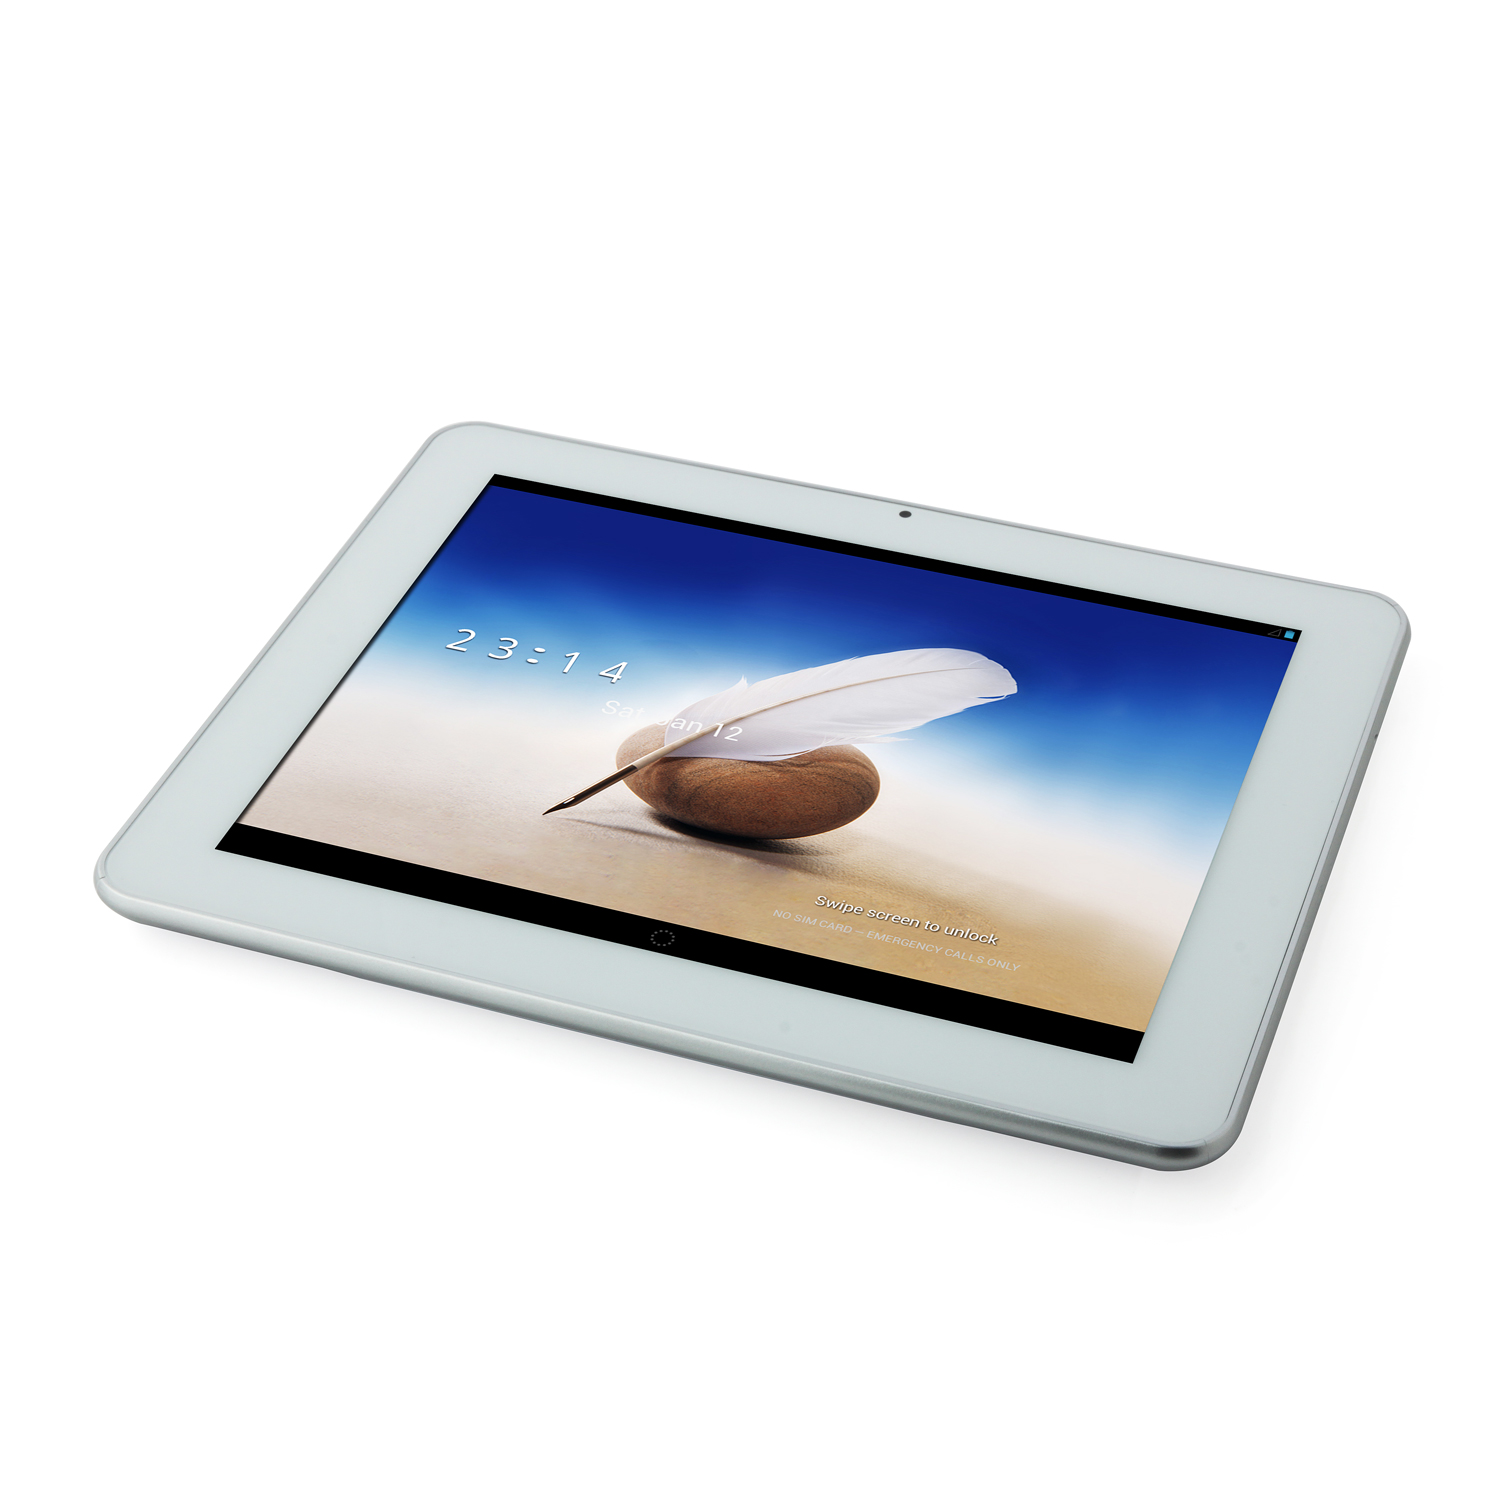 Ampe A90 Tablet PC MTK8382 Quad Core 9.7 Inch Android 4.2 8GB 3G WCDMA White